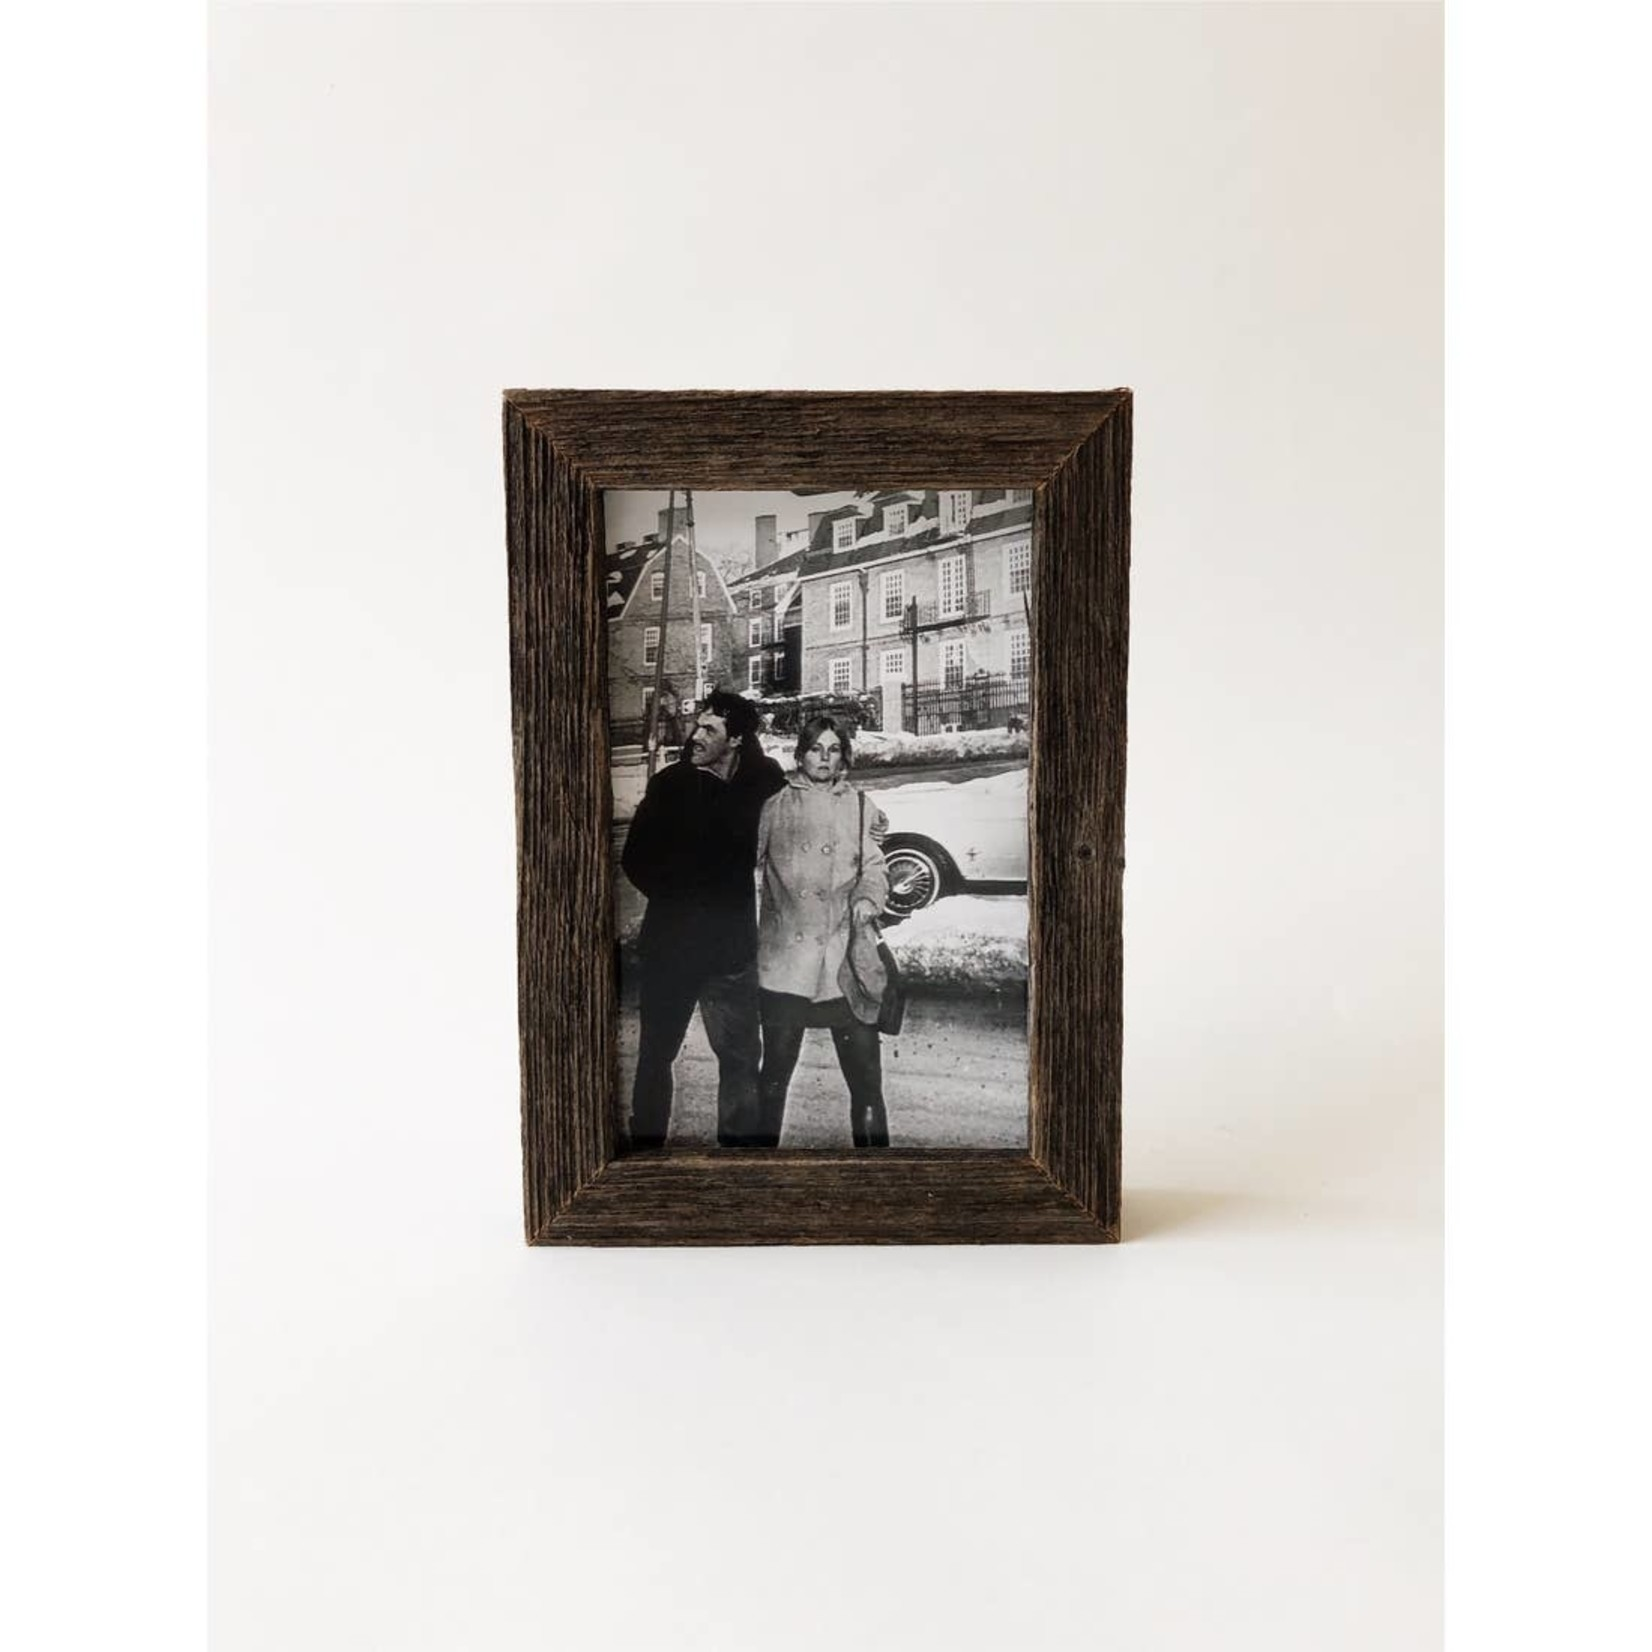 Alibi Interiors Alibi Reclaimed Wood Gallery Frame 4x6